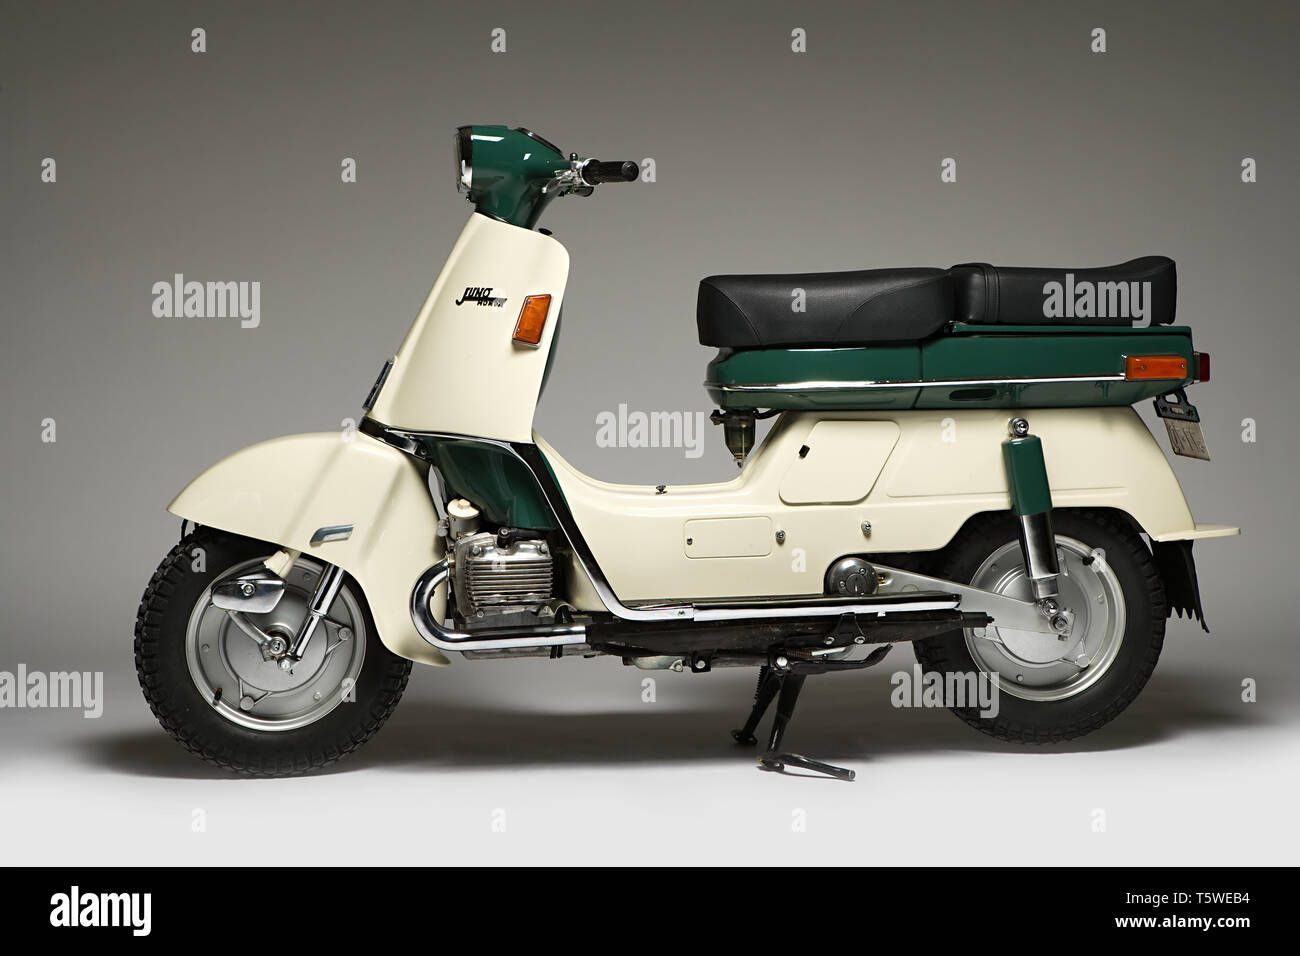 Honda Scooter Stock Photos Honda Scooter Stock Images Page 2 Alamy